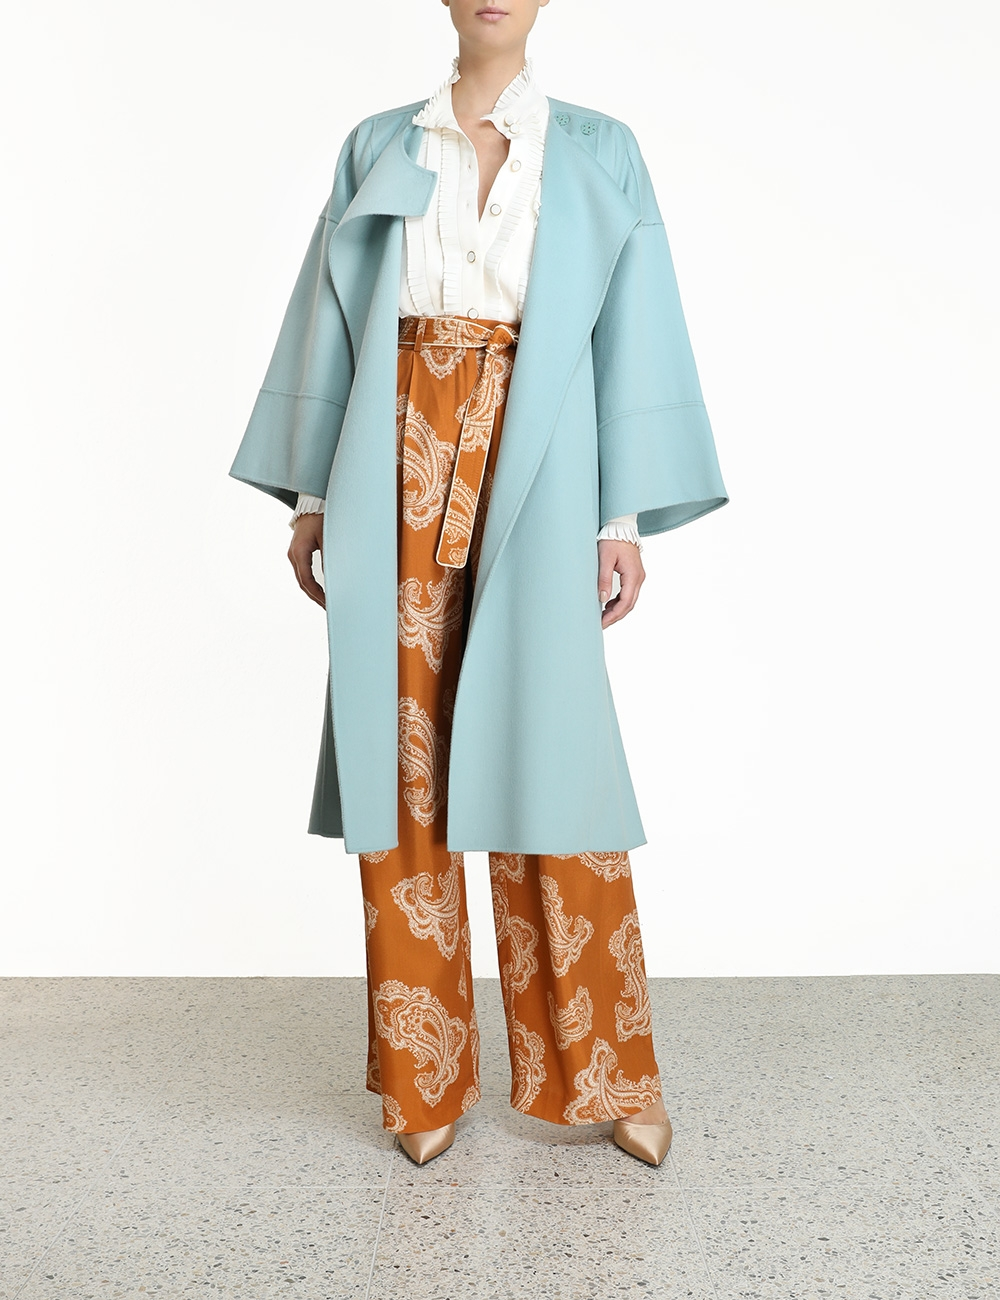 Glassy Blanket Coat